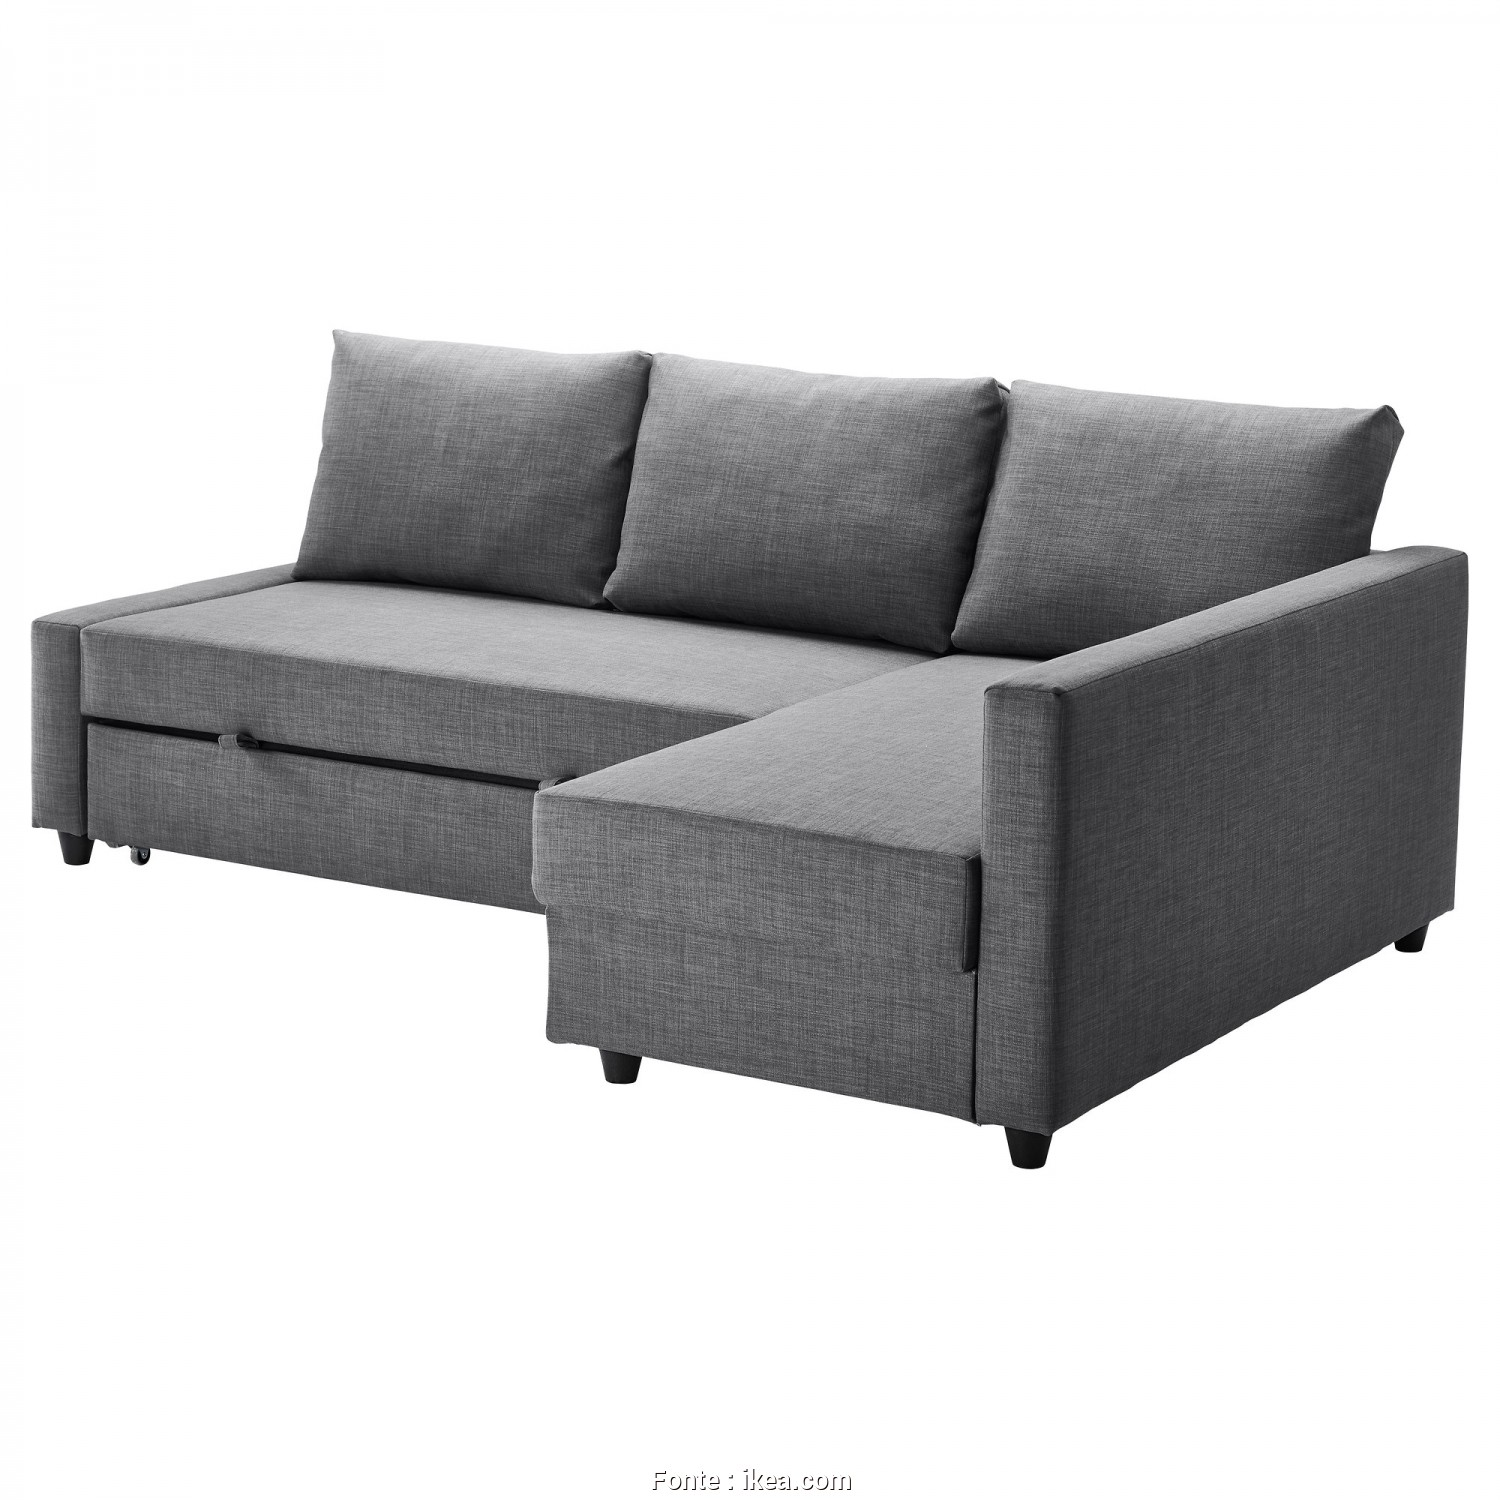 Grankulla Ikea Prix, Eccezionale IKEA FRIHETEN Corner Sofa-Bed With Storage Sofa, Chaise Longue, Double, In